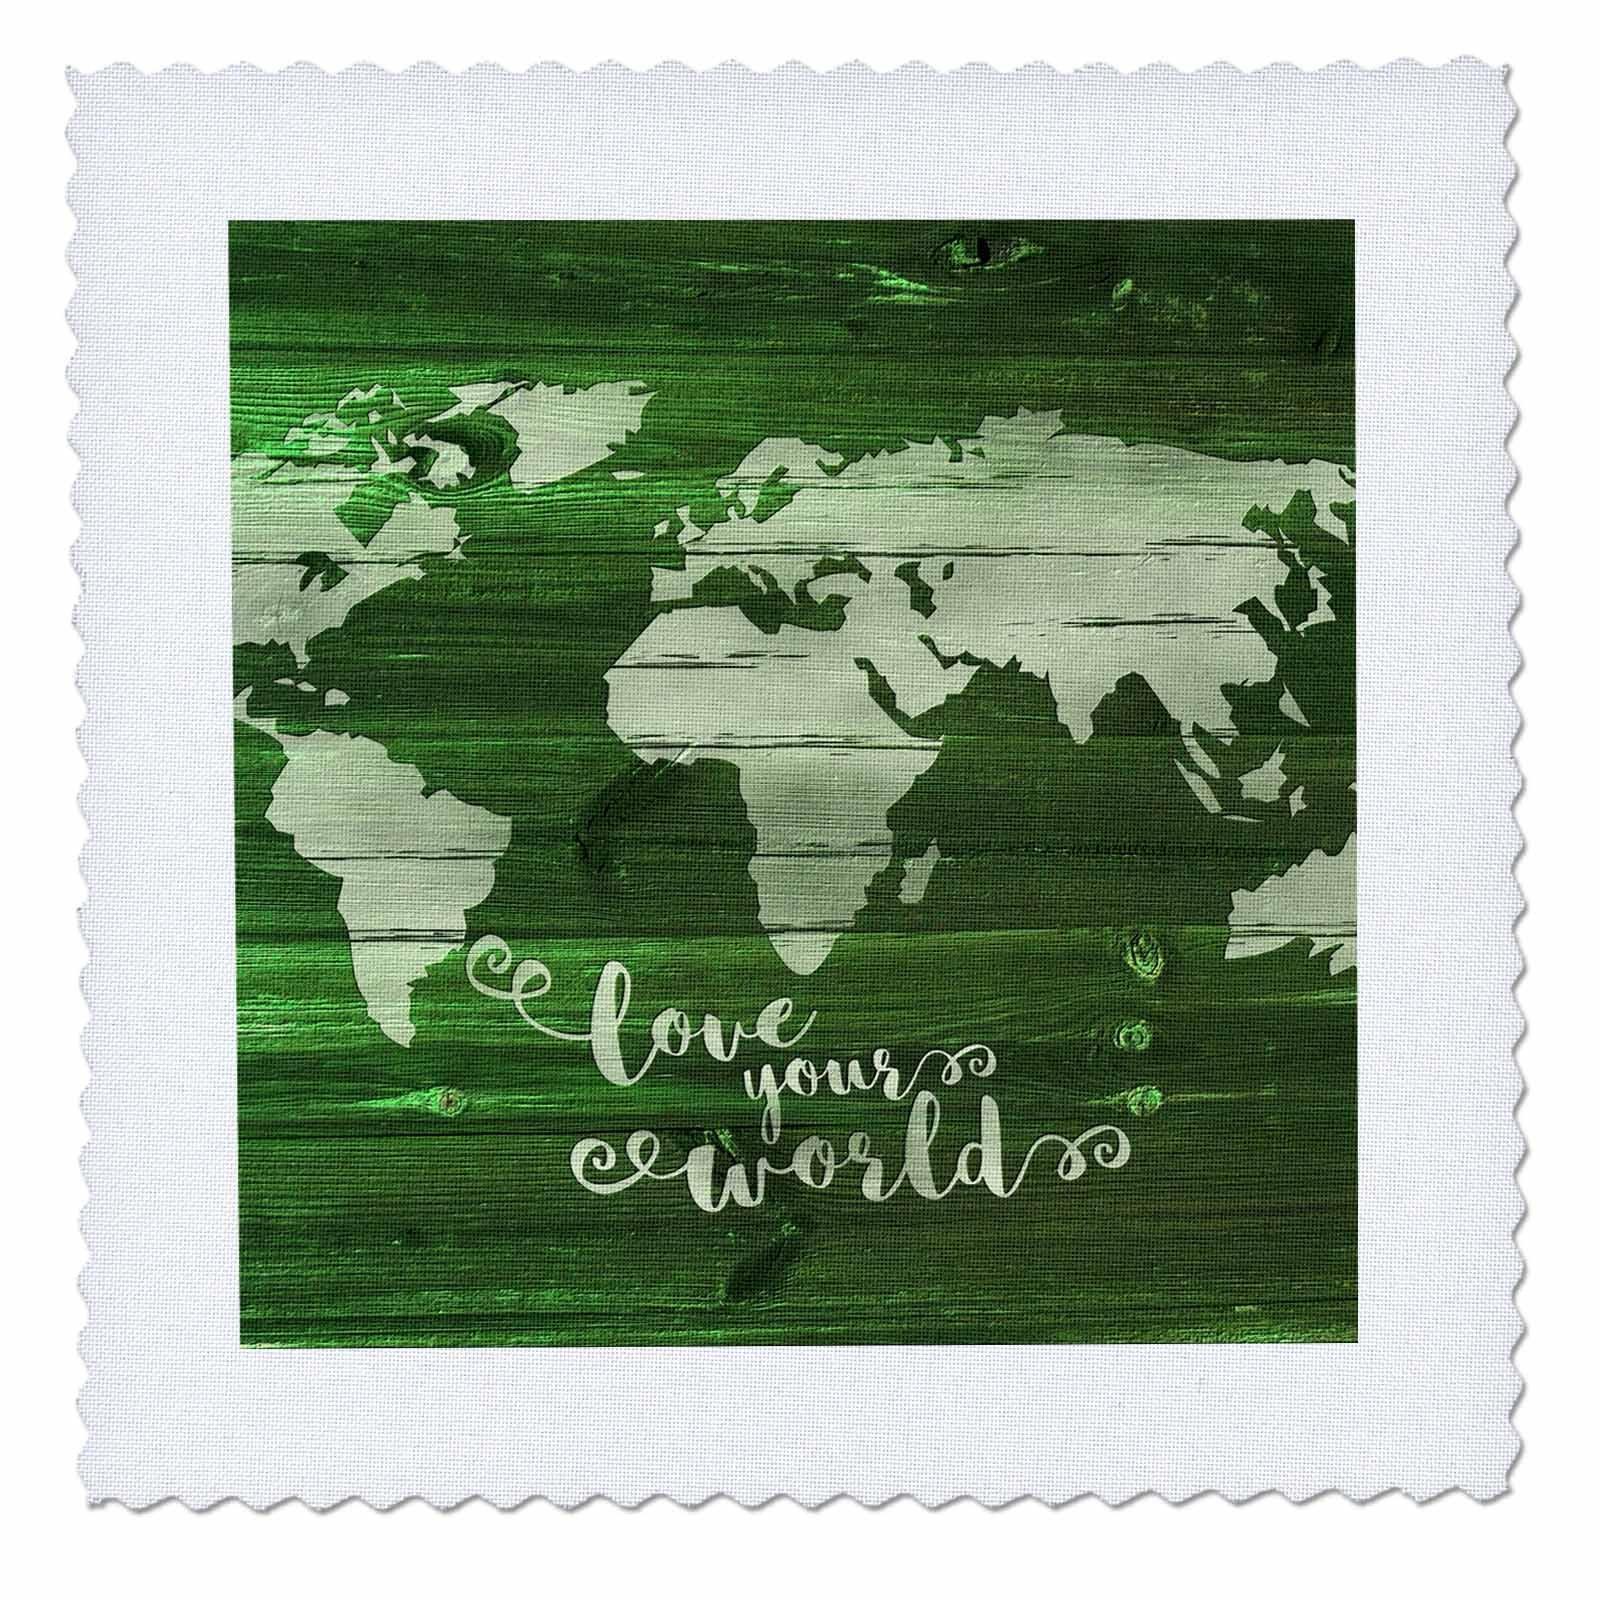 3dRose Russ Billington Designs - Love Your World- White Paint on Green Wood Effect- Not Real Wood - 22x22 inch quilt square (qs_261906_9)